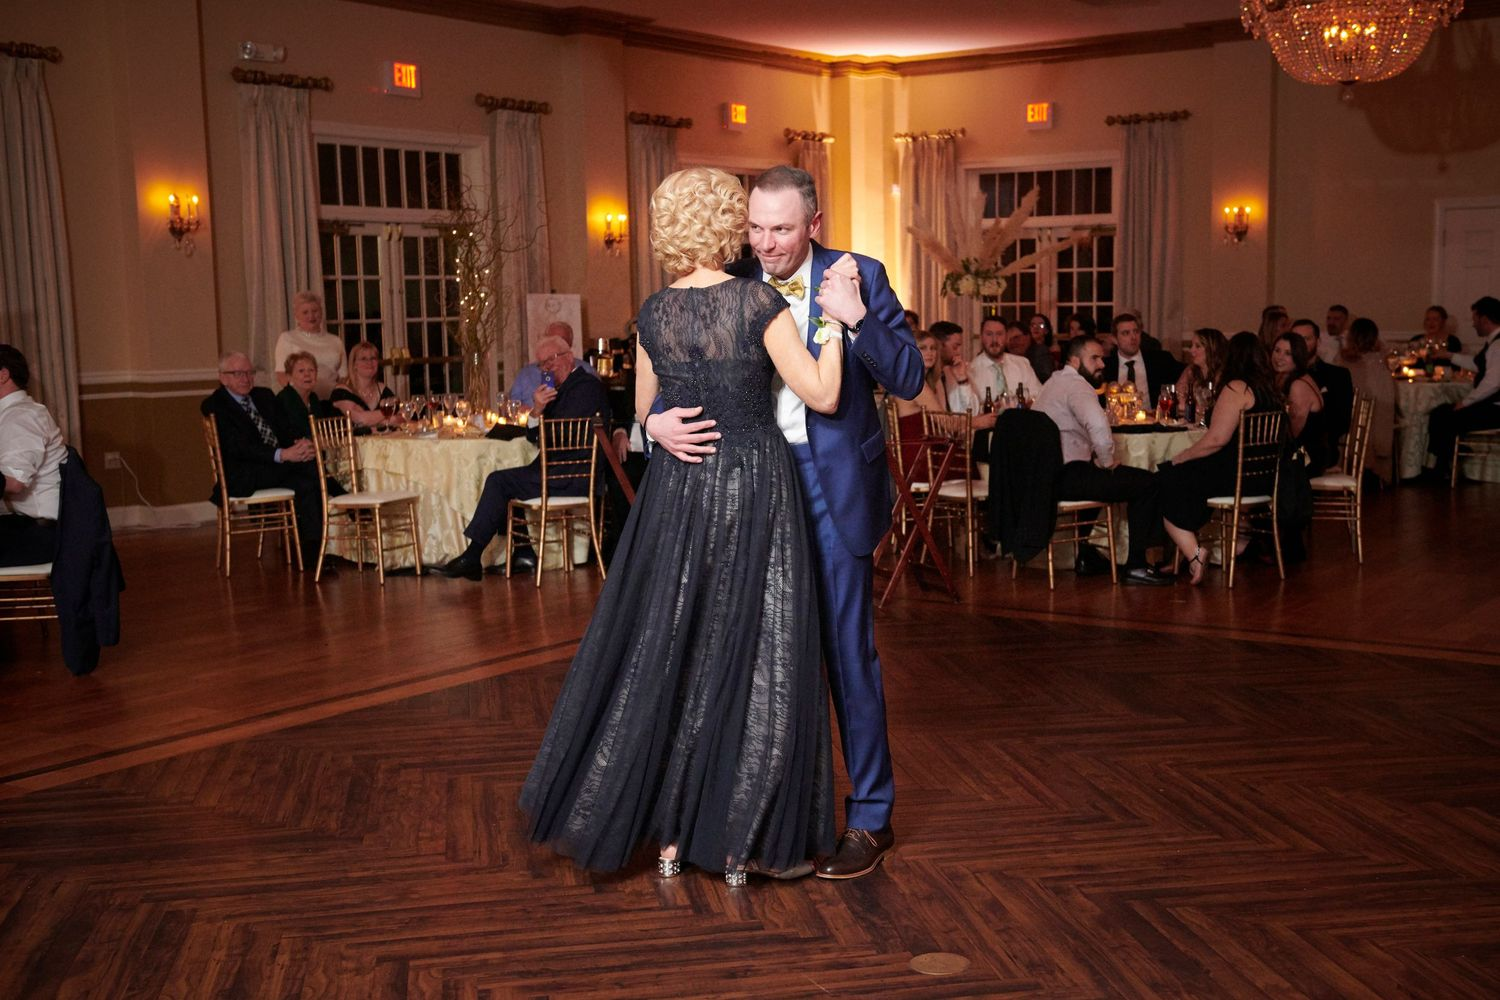 mother son dance at reception at Belle Voir Manor